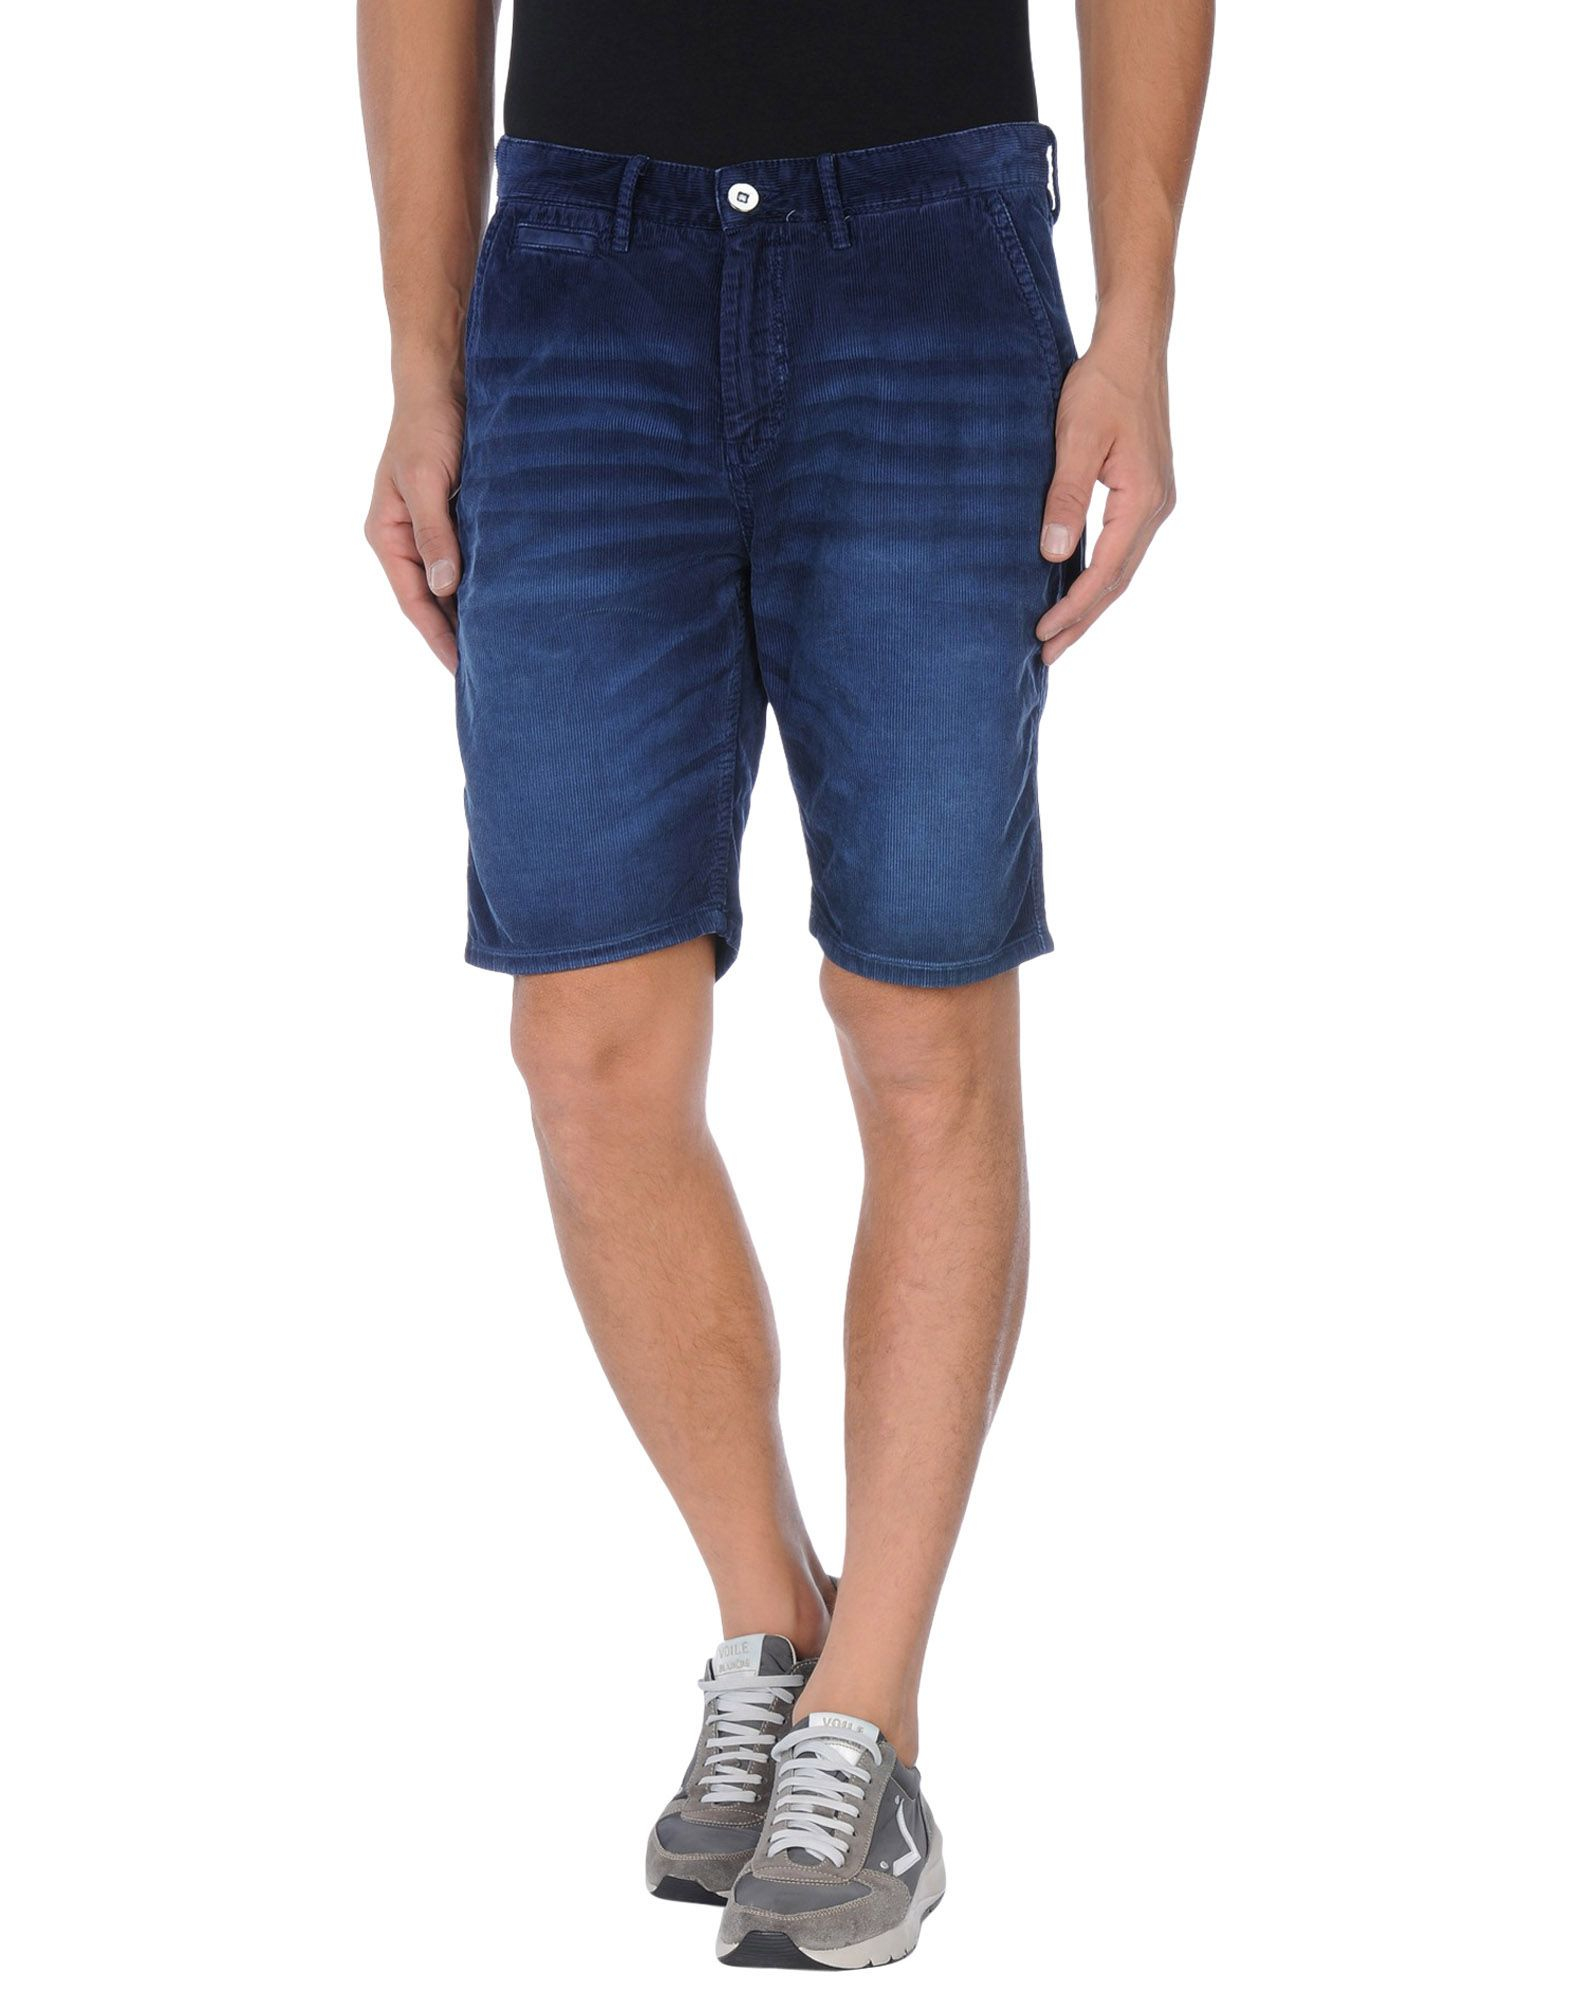 Free shipping BOTH ways on bermuda shorts, from our vast selection of styles. Fast delivery, and 24/7/ real-person service with a smile. Click or call